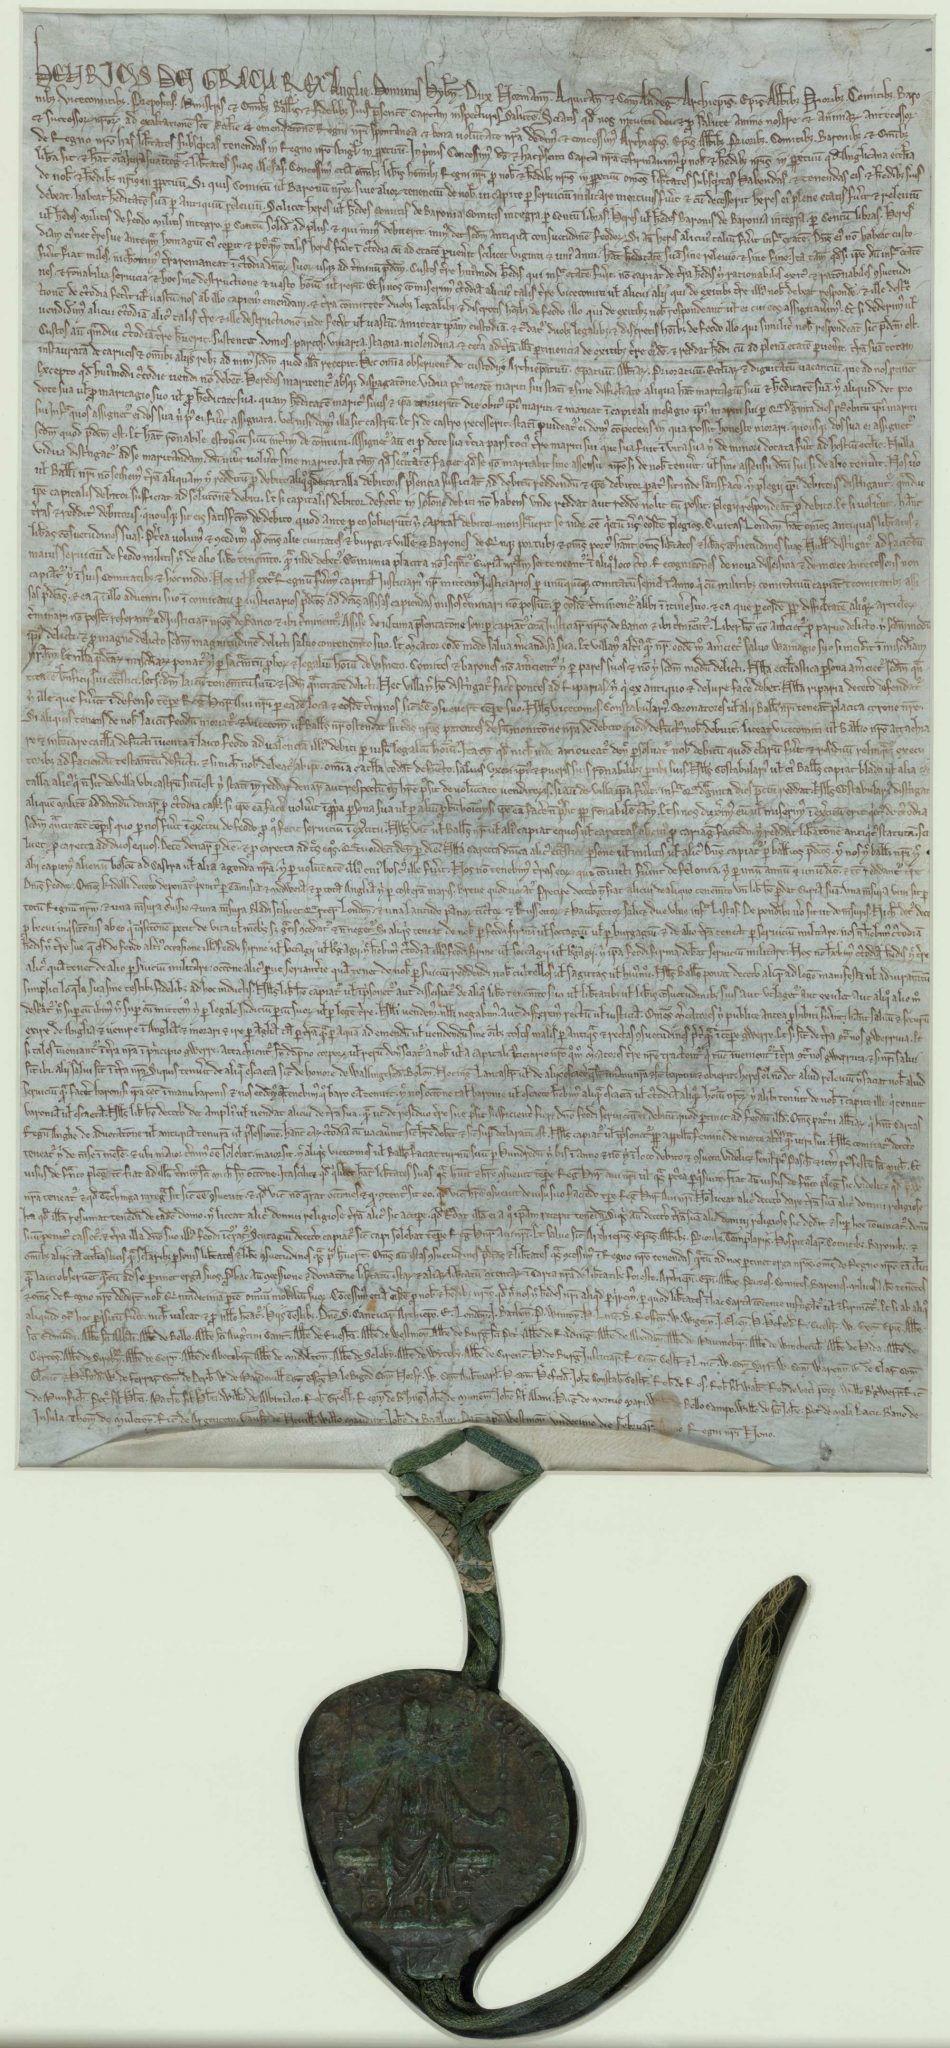 1225 version of Magna Carta with King Henry III's seal kept in the British Library Photograph by British Library. [Public Domain]